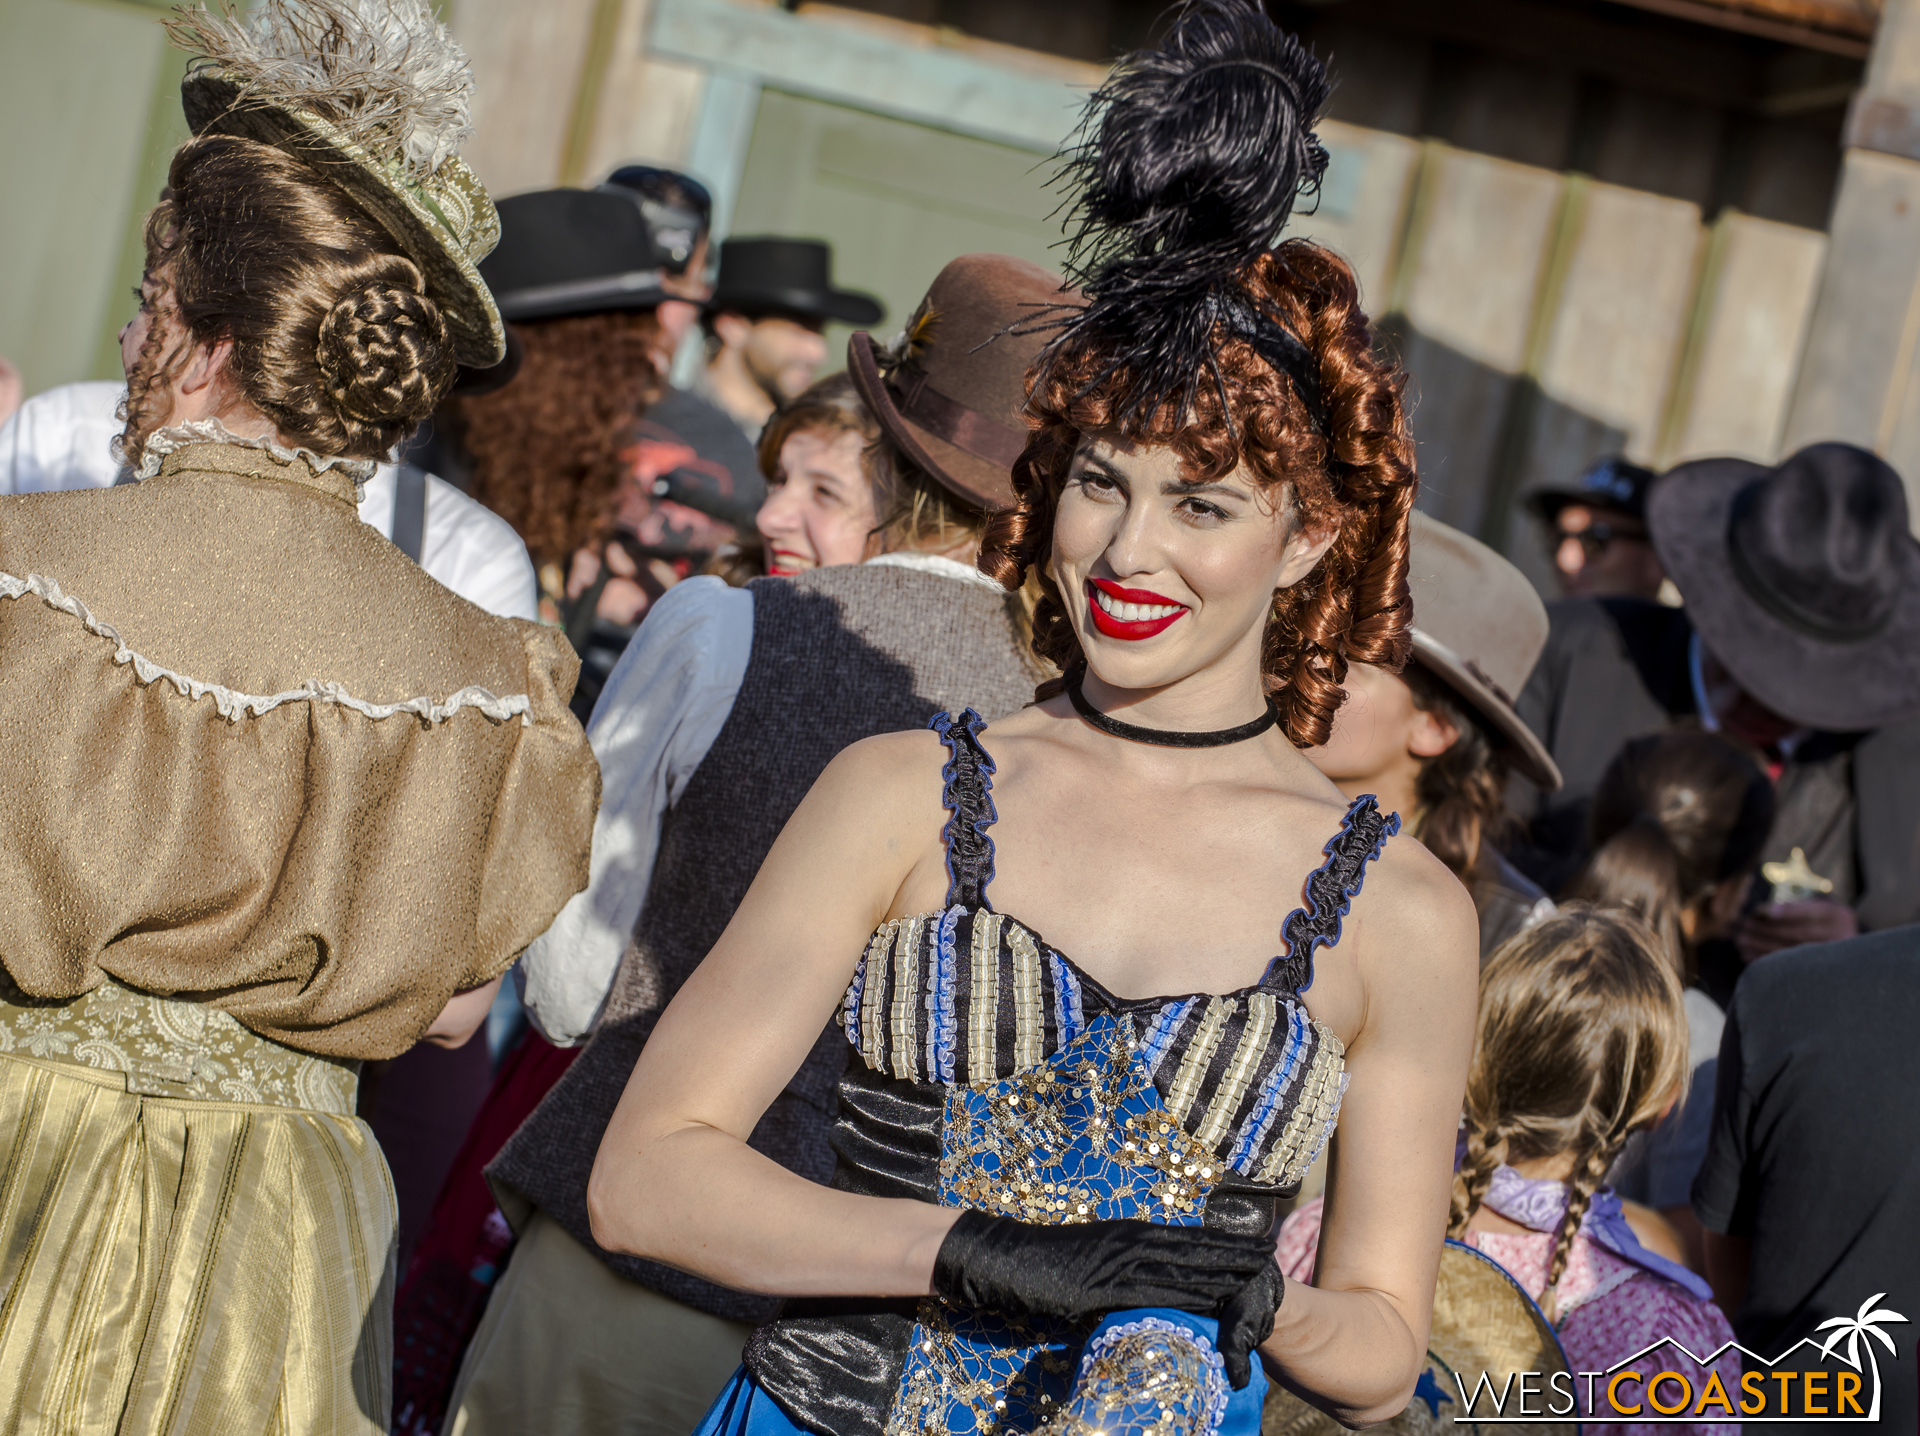 A Calico saloon girl looks on as the hoedown continues.